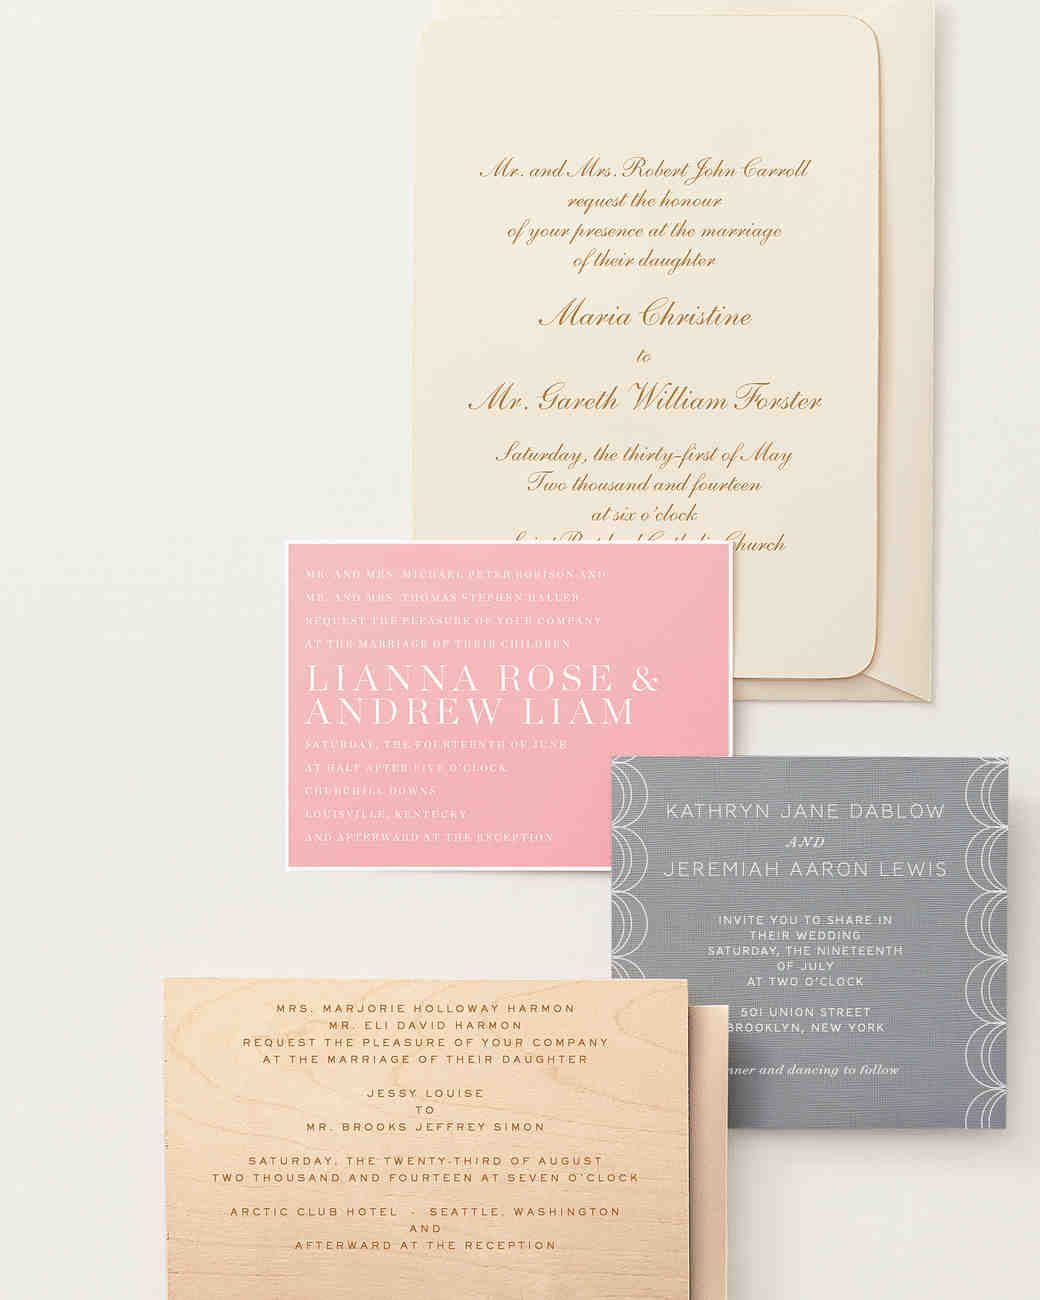 9 host line scenarios to make wording your wedding invitations super 9 host line scenarios to make wording your wedding invitations super simple martha stewart weddings filmwisefo